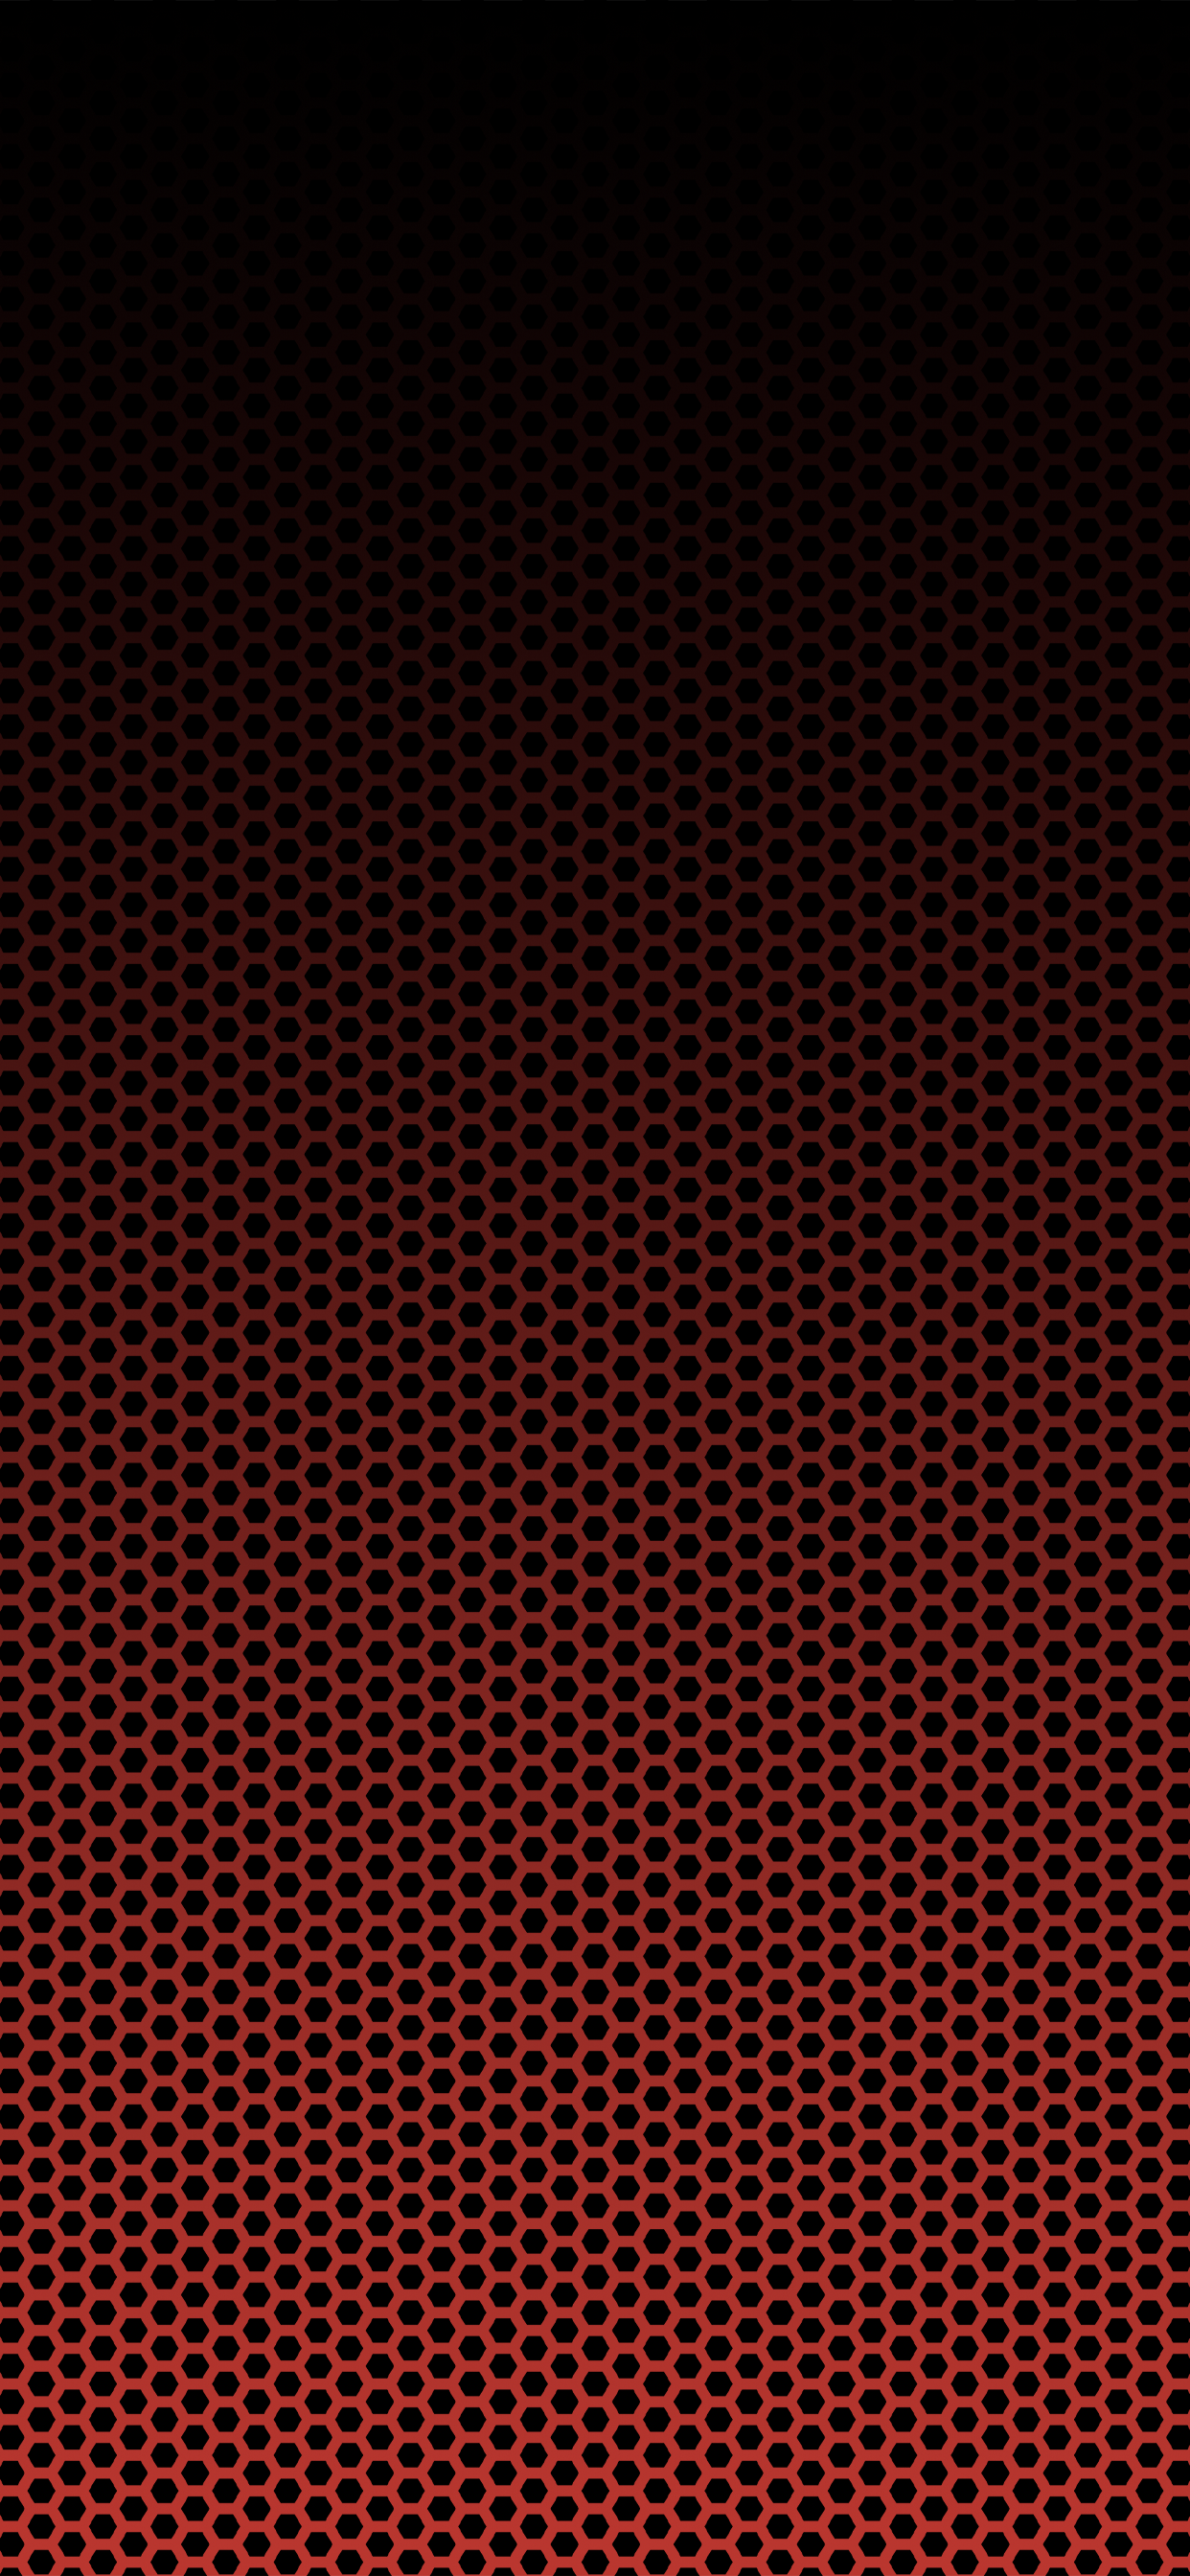 MatrixRed dark pattern iphone wallpaper arthur schrinemacher